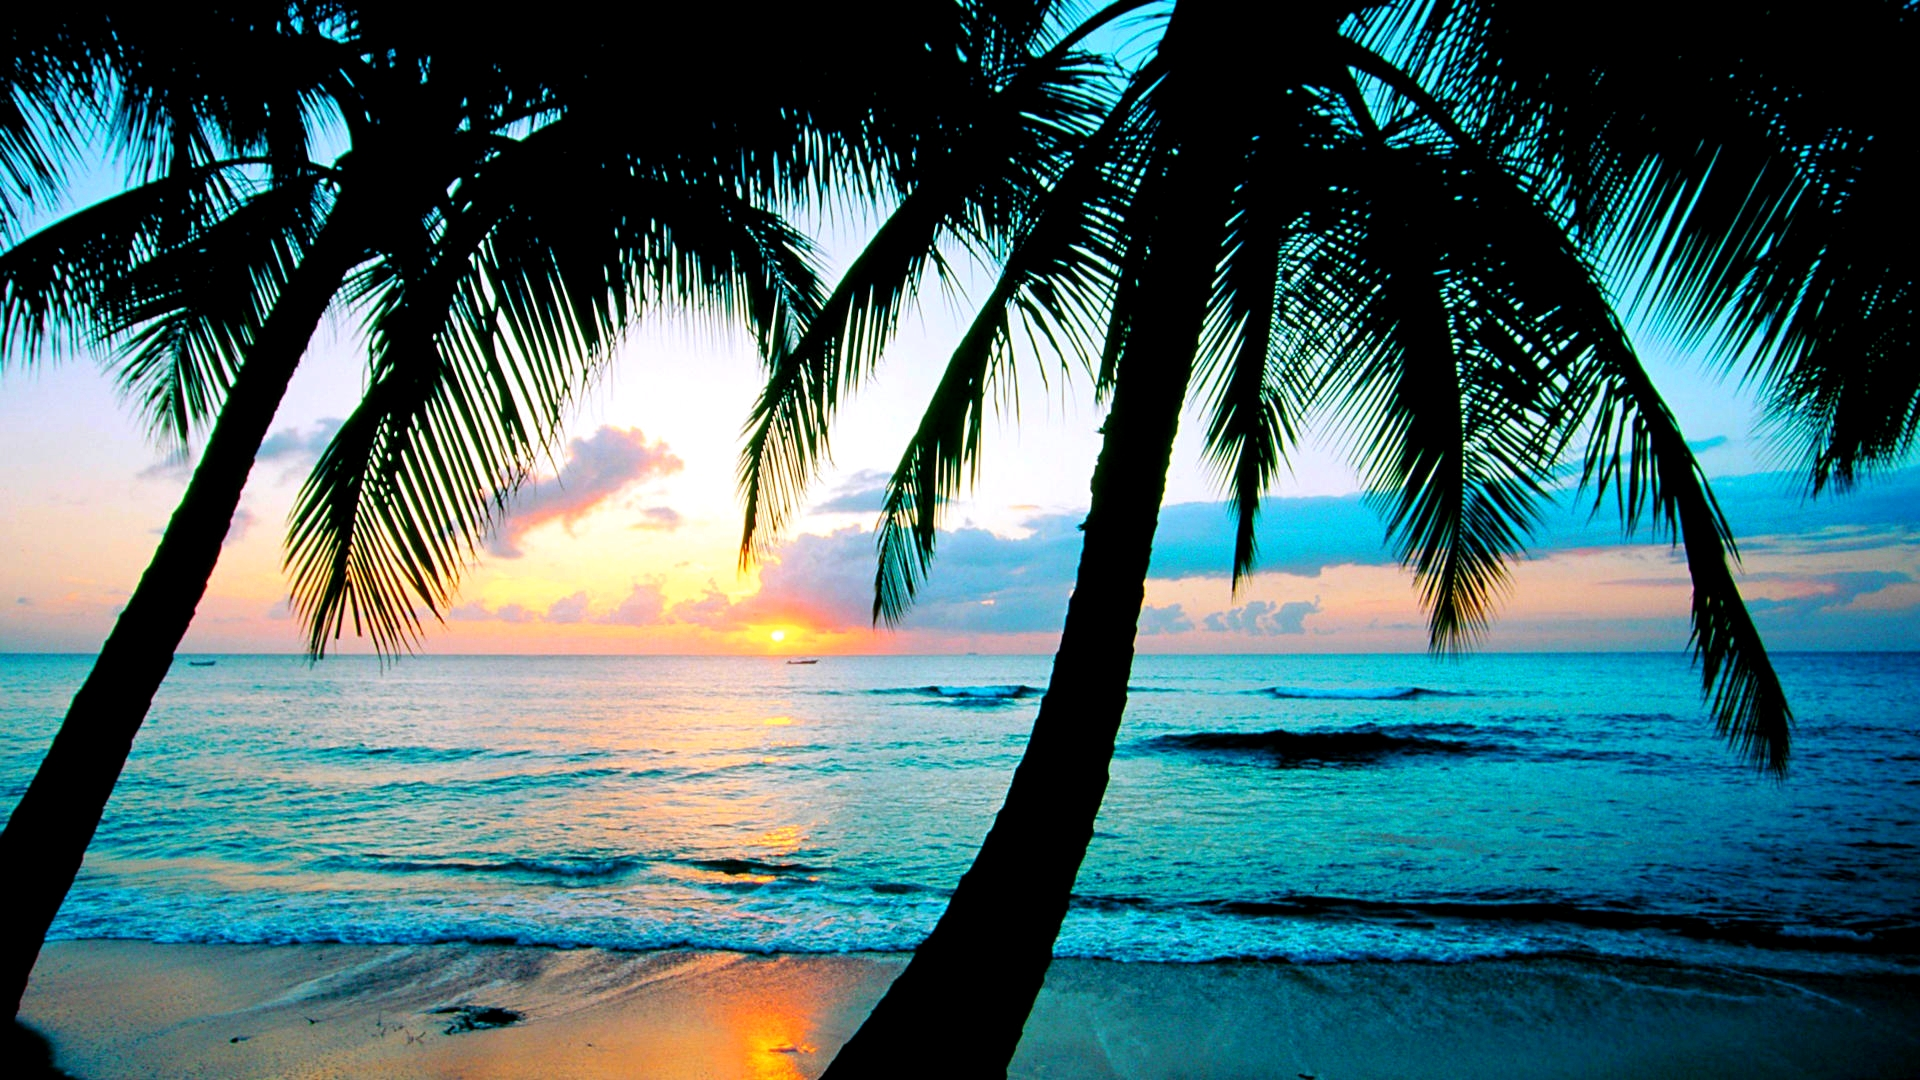 Beach Backgrounds for Wallpaper - WallpaperSafari